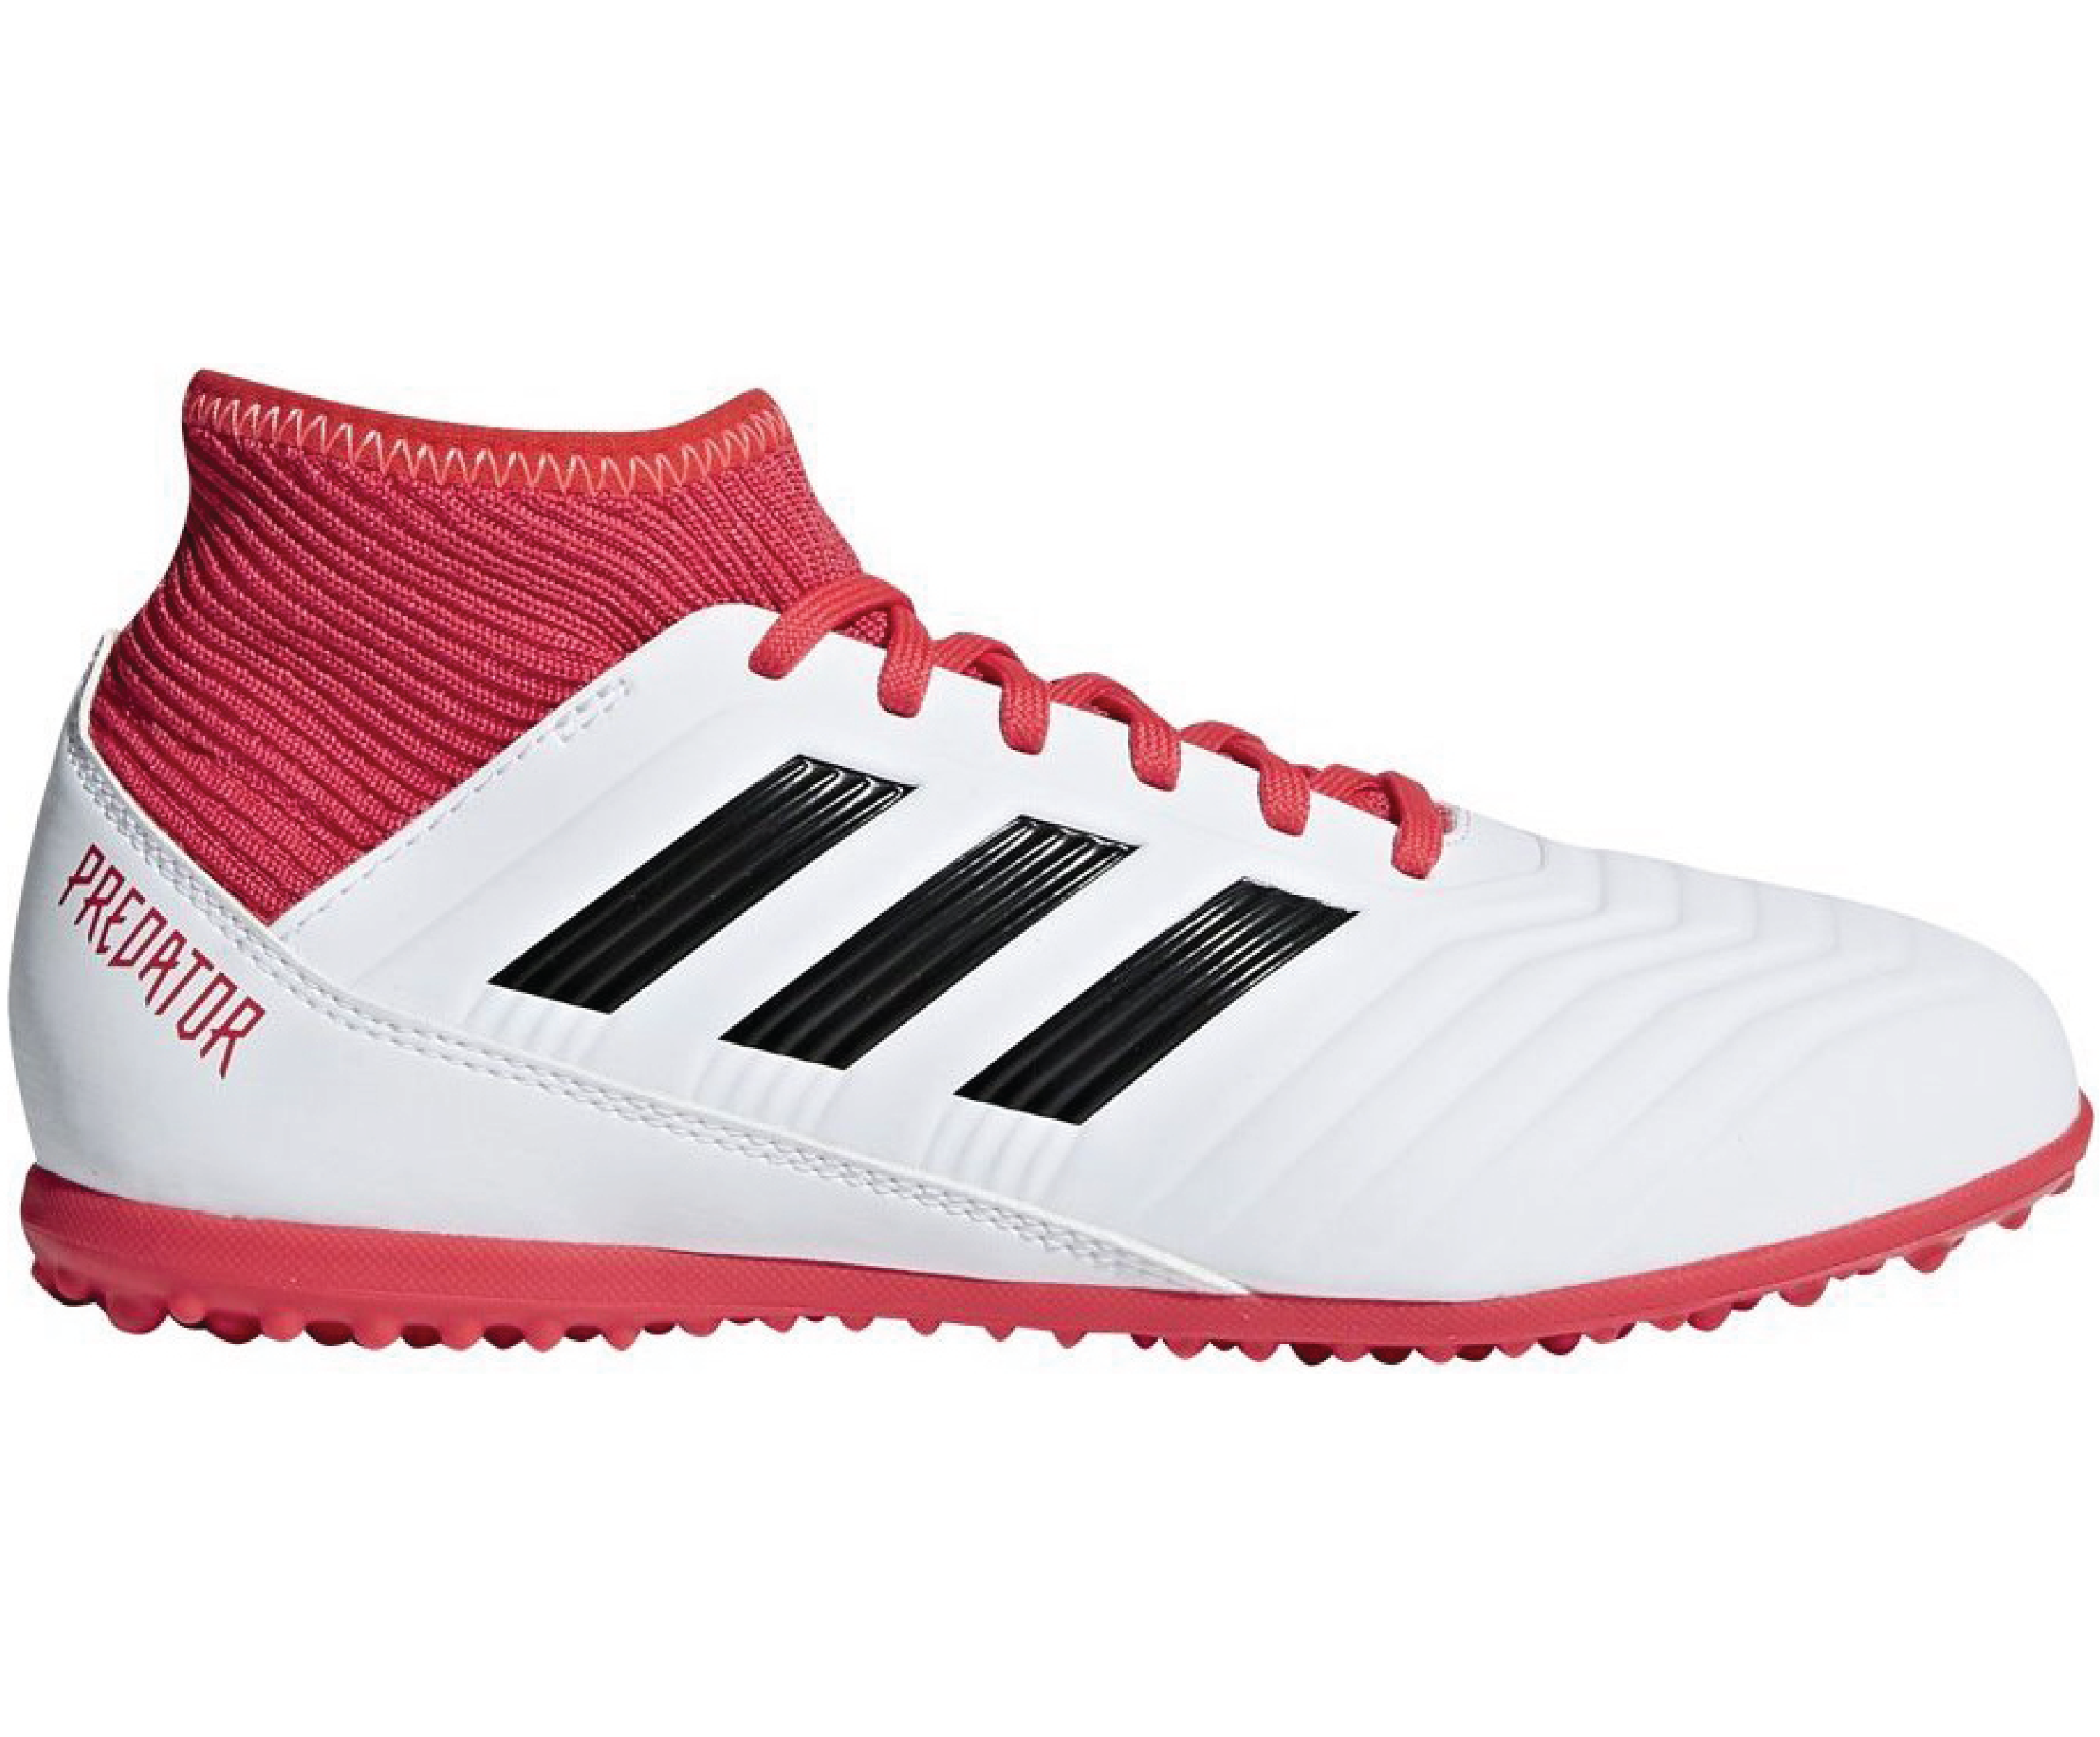 a84073679b9572 A picture of Adidas Kid s Predator Tango 18.3 Turf Indoor Soccer Cleats